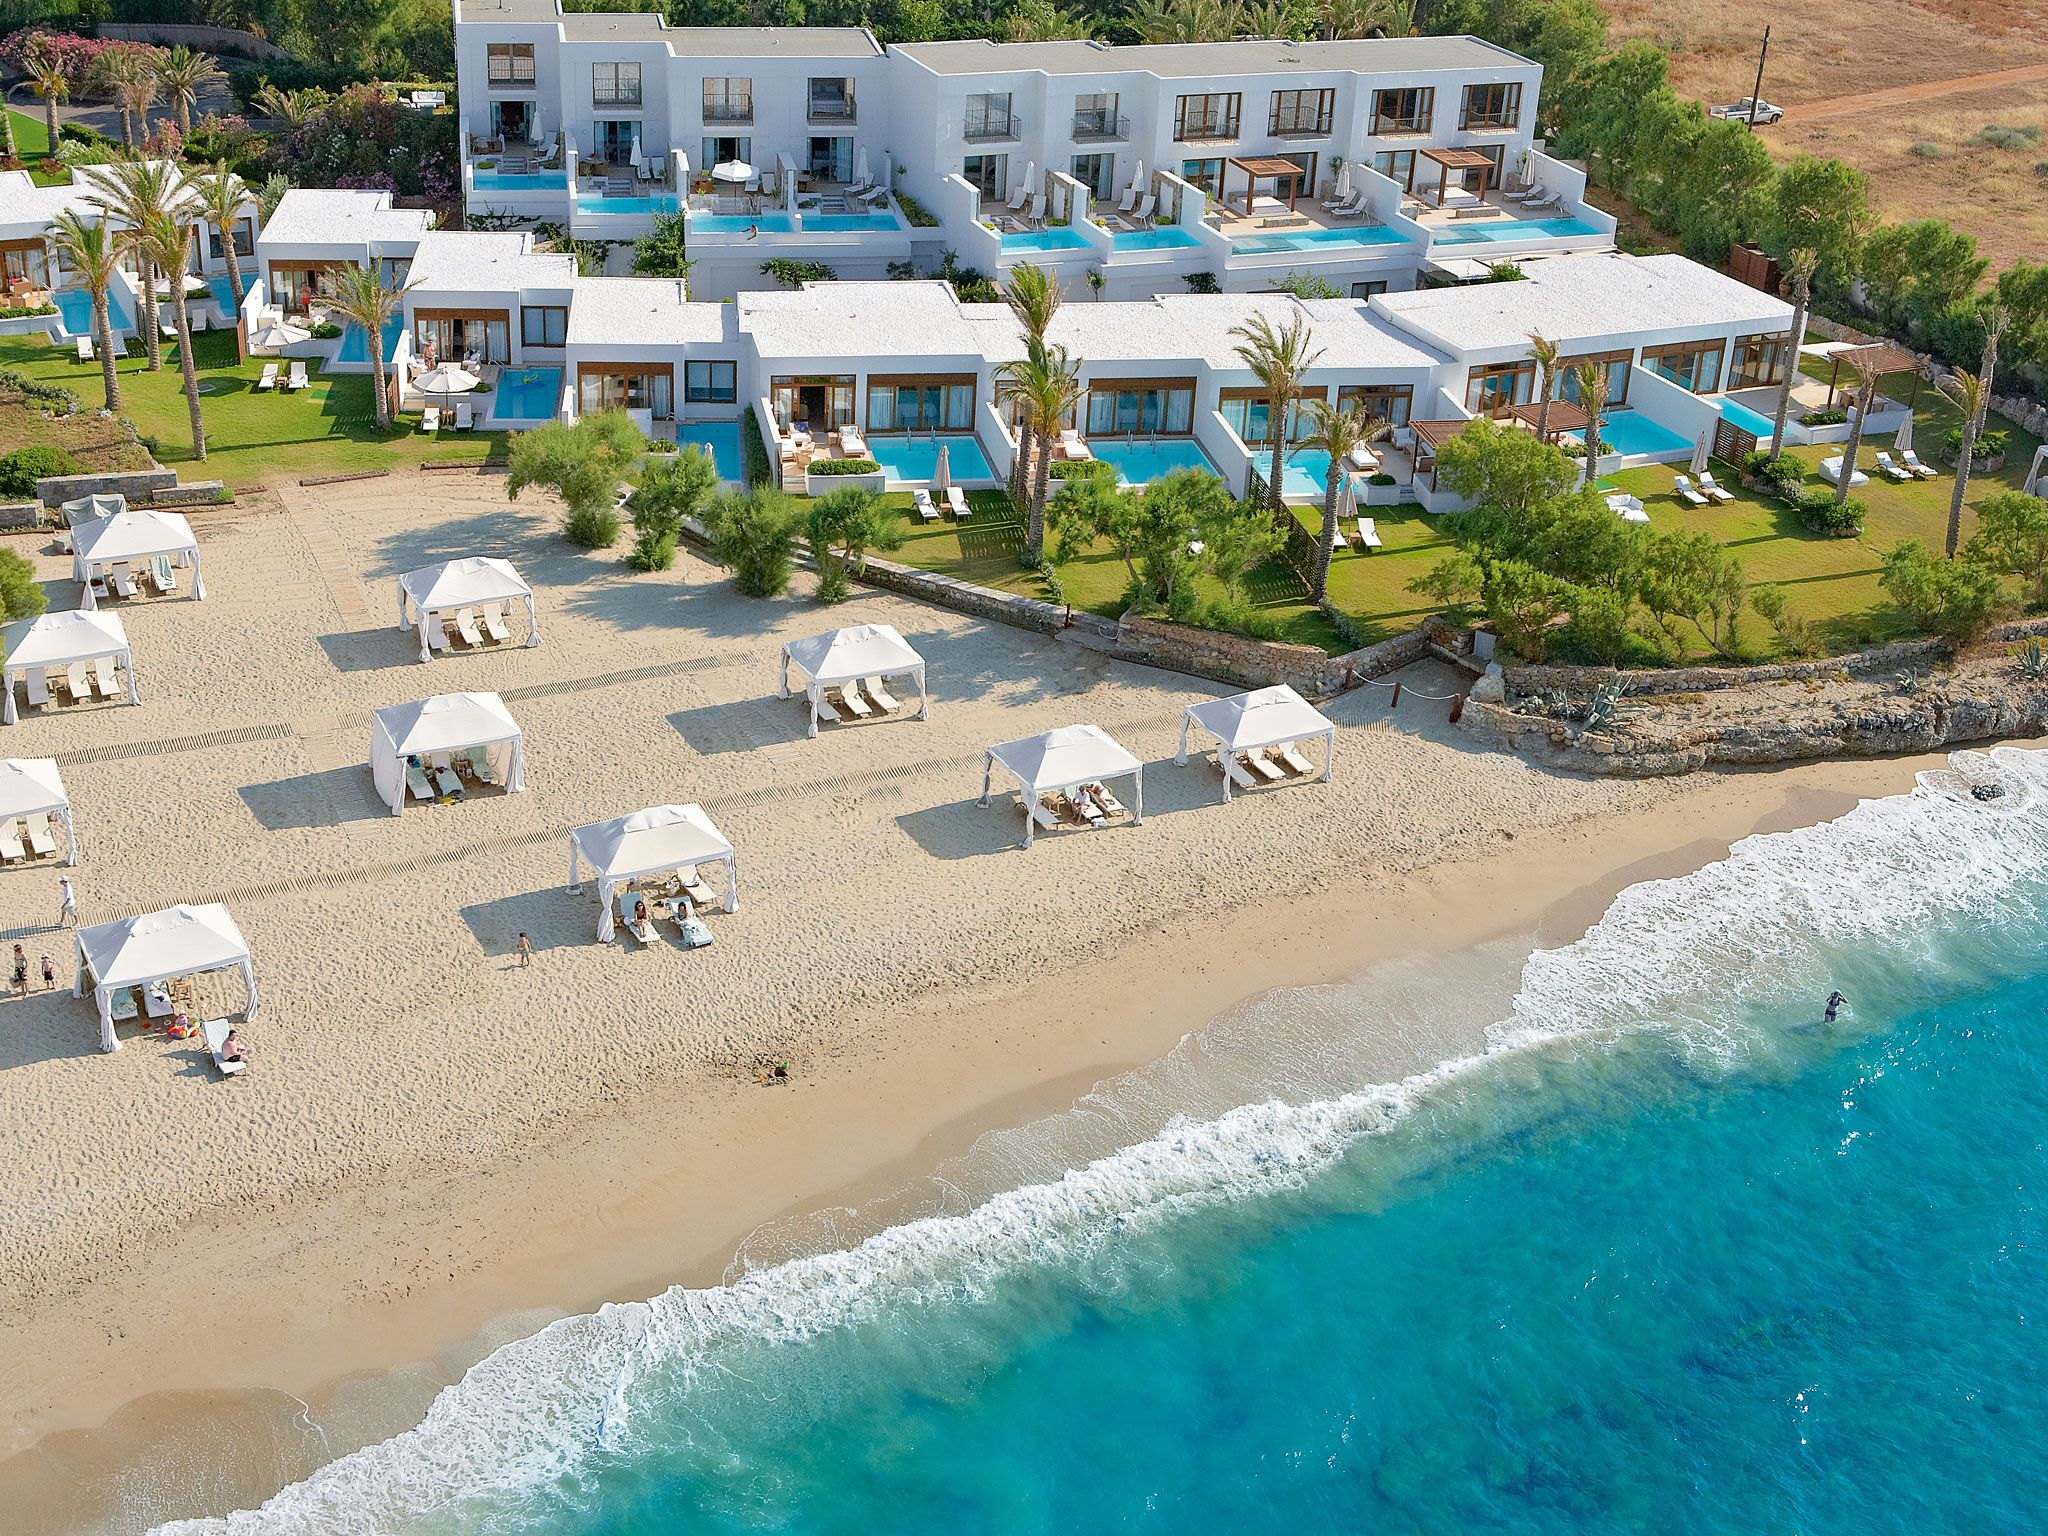 Amirandes Grecotel Exclusive Resort Is A 5* Luxury Hotel, Features